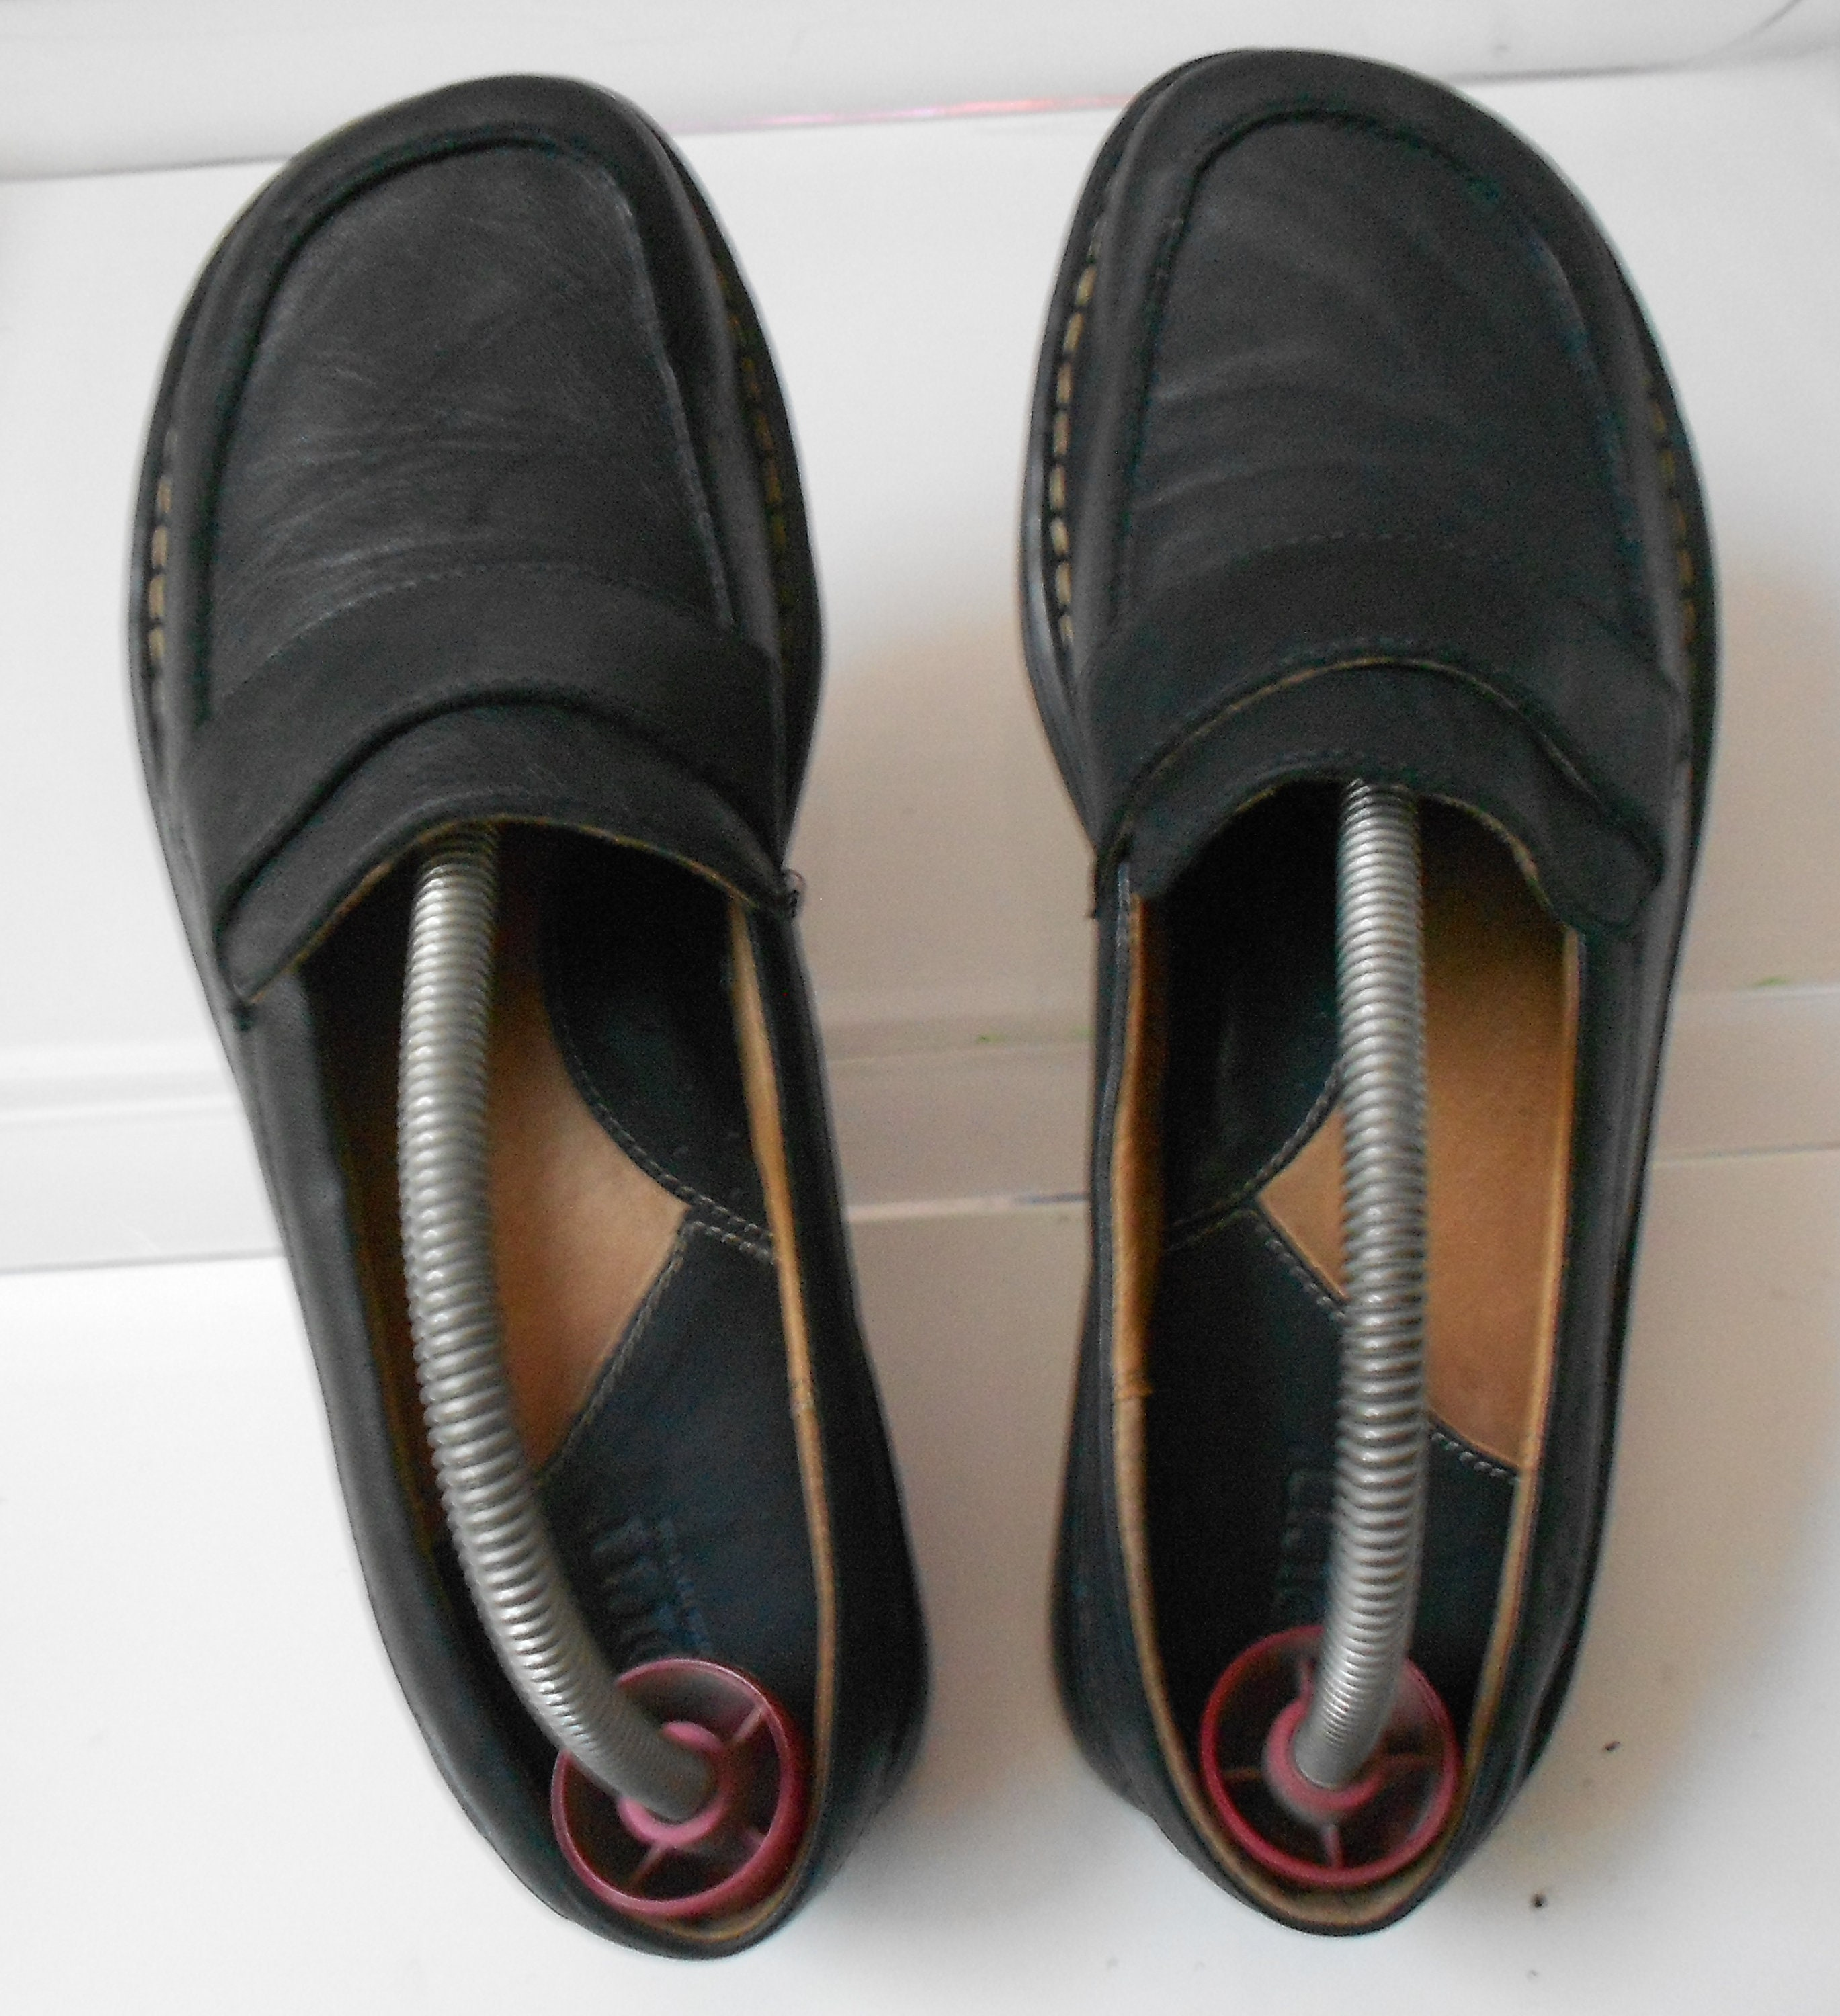 ab9af5bcf2ab Born women s mules loafers shoes black leather handcrafted